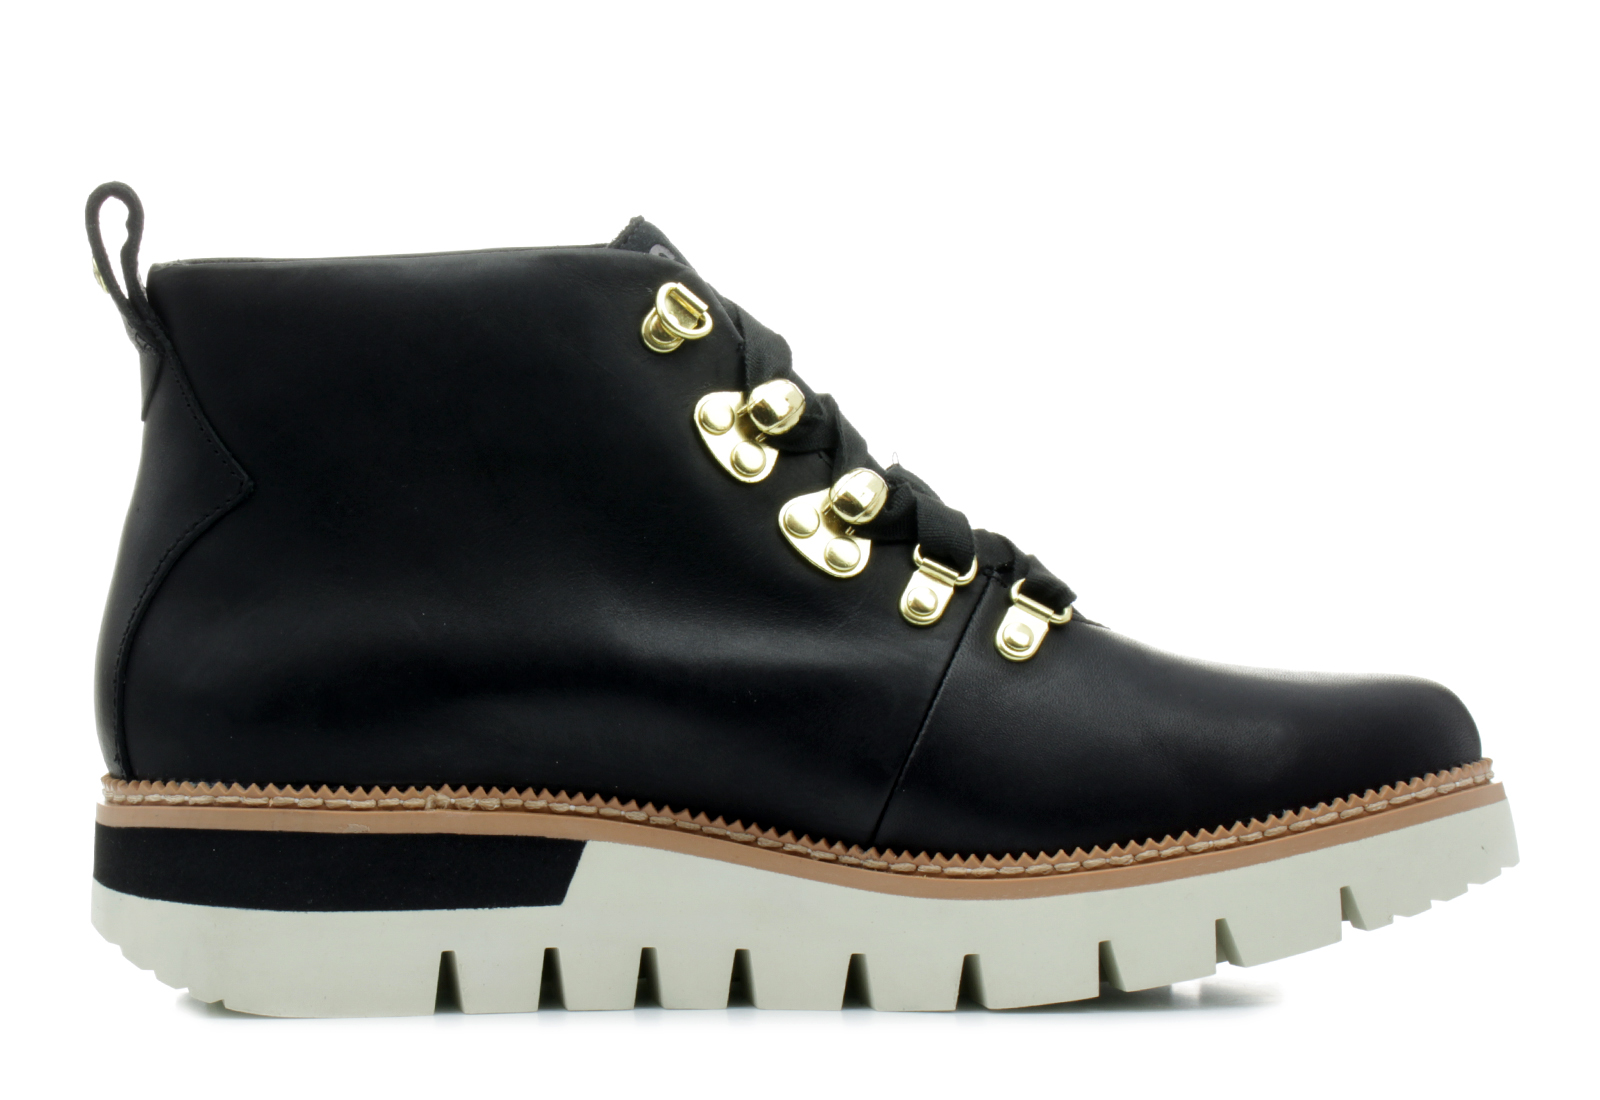 Cat Boots - Imprint - 309956-blk - Online shop for sneakers 91dfb2c017d